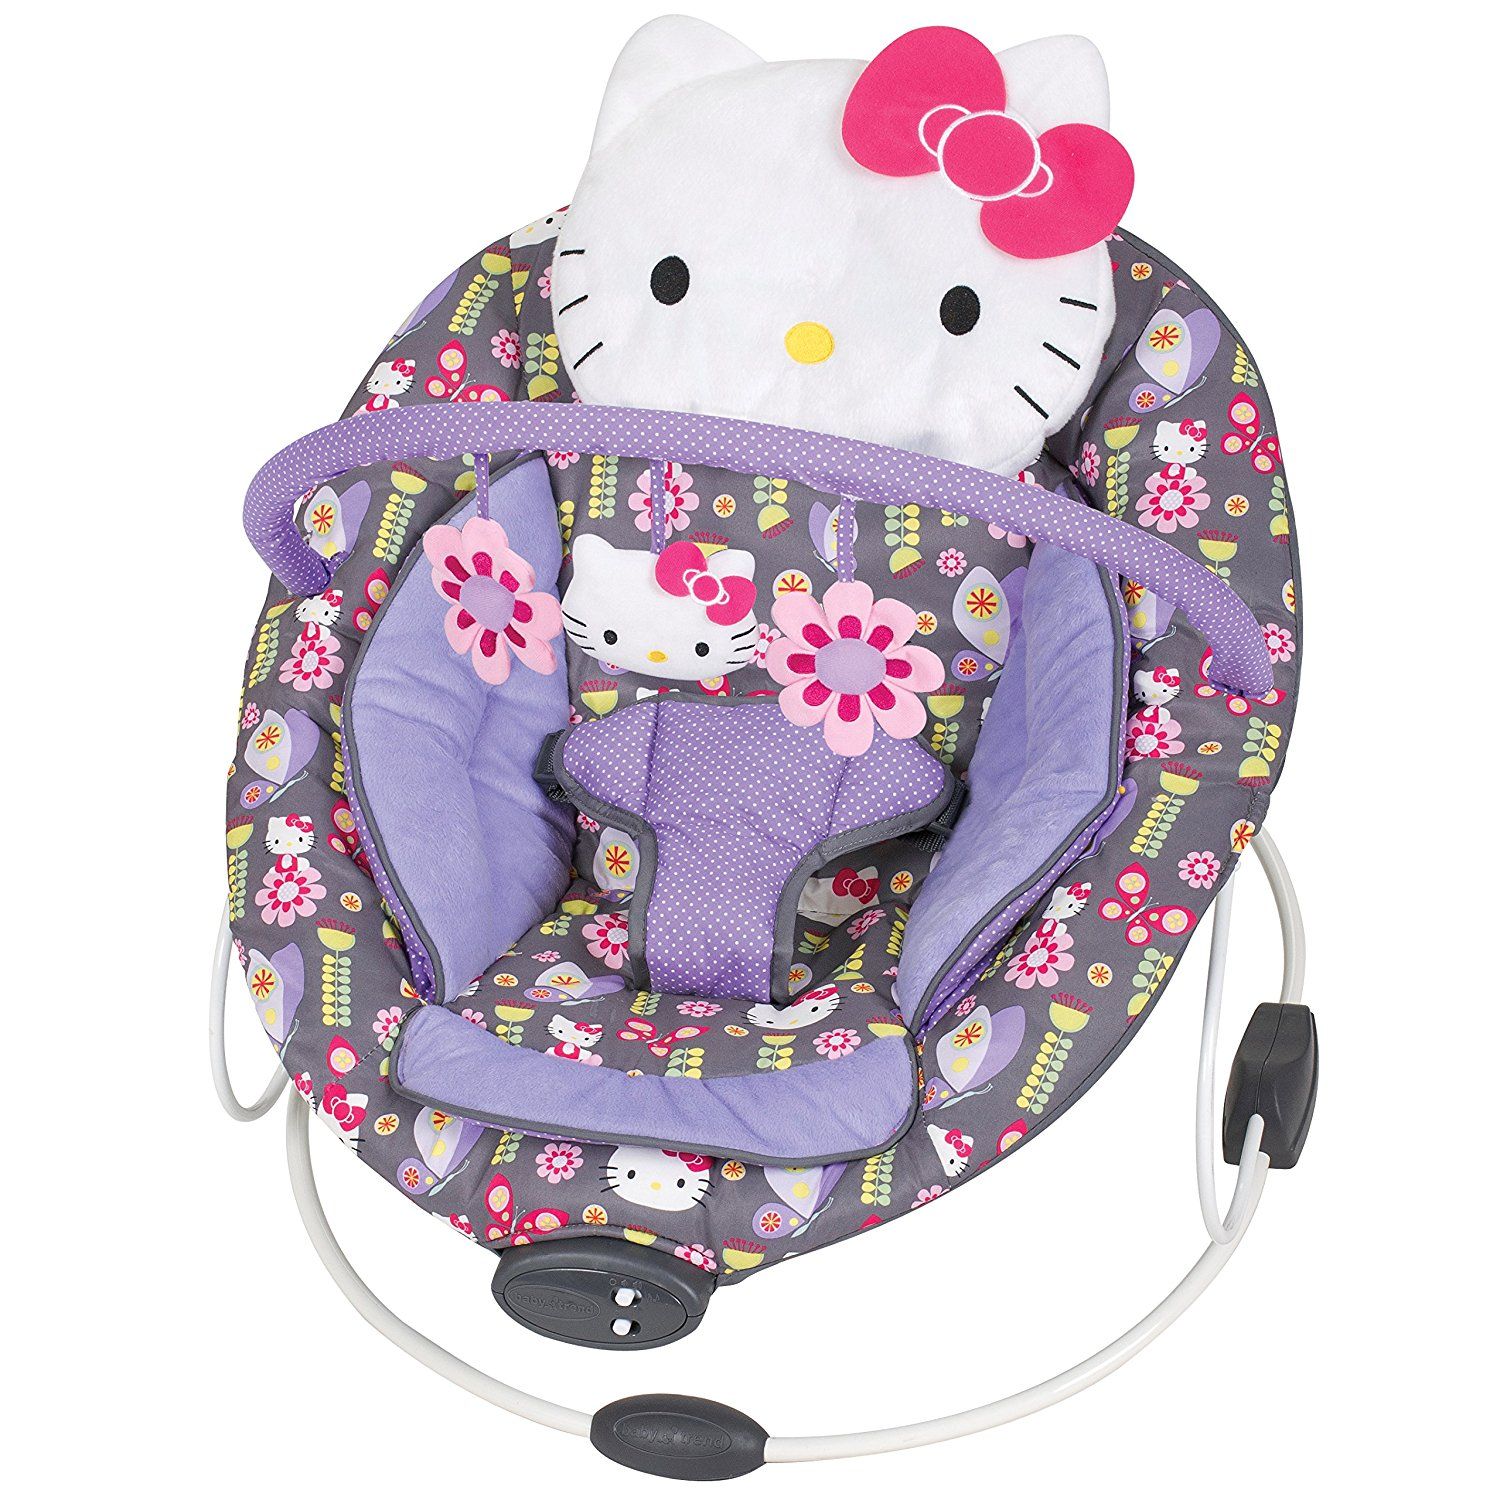 Cadeirinha de Balanço Hello Kitty bouncer Chair Kitty Flower Dance